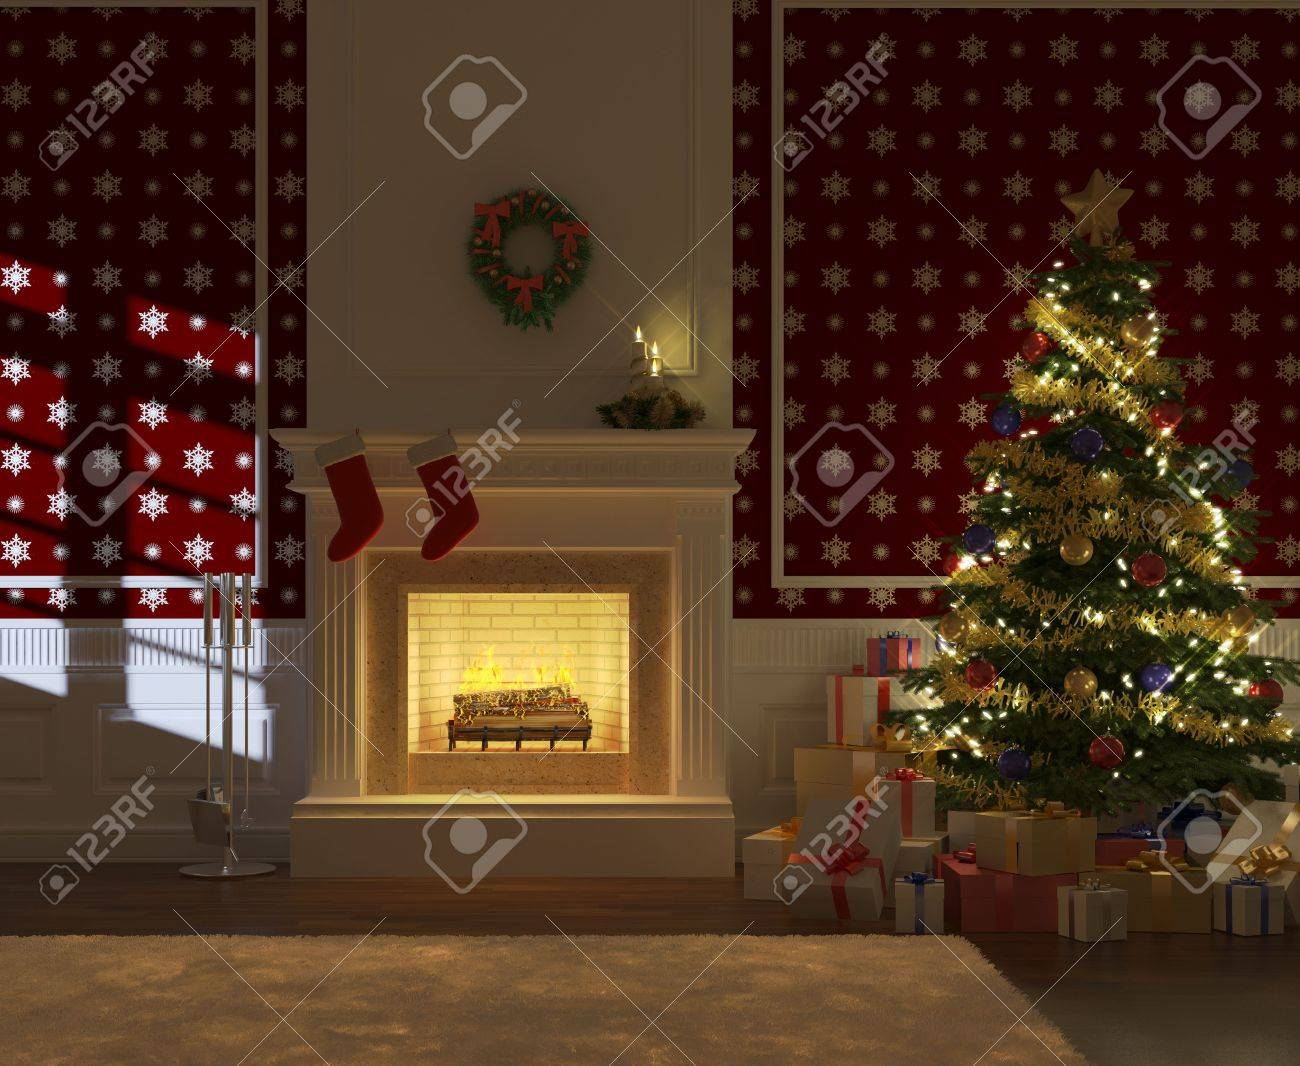 cozy decorated christmas fireplace at night with tree and presents frontal view Stock Photo - 8163619